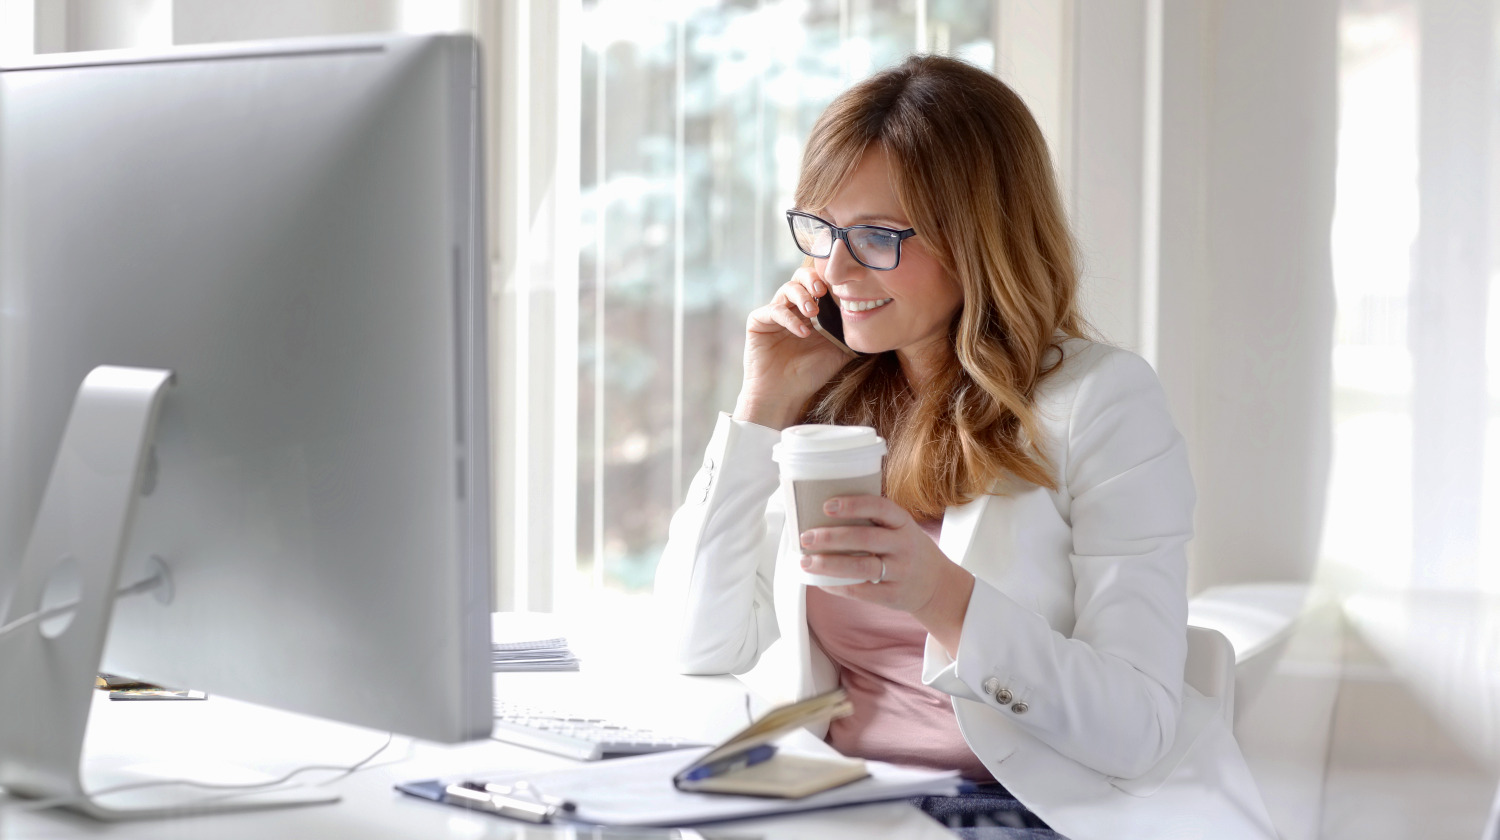 portrait-beautiful-executive-businesswoman-making-call   How To Handle Career Change In Your 50s (And Beyond)   Career Change at 50   best career change jobs at 40   Featured